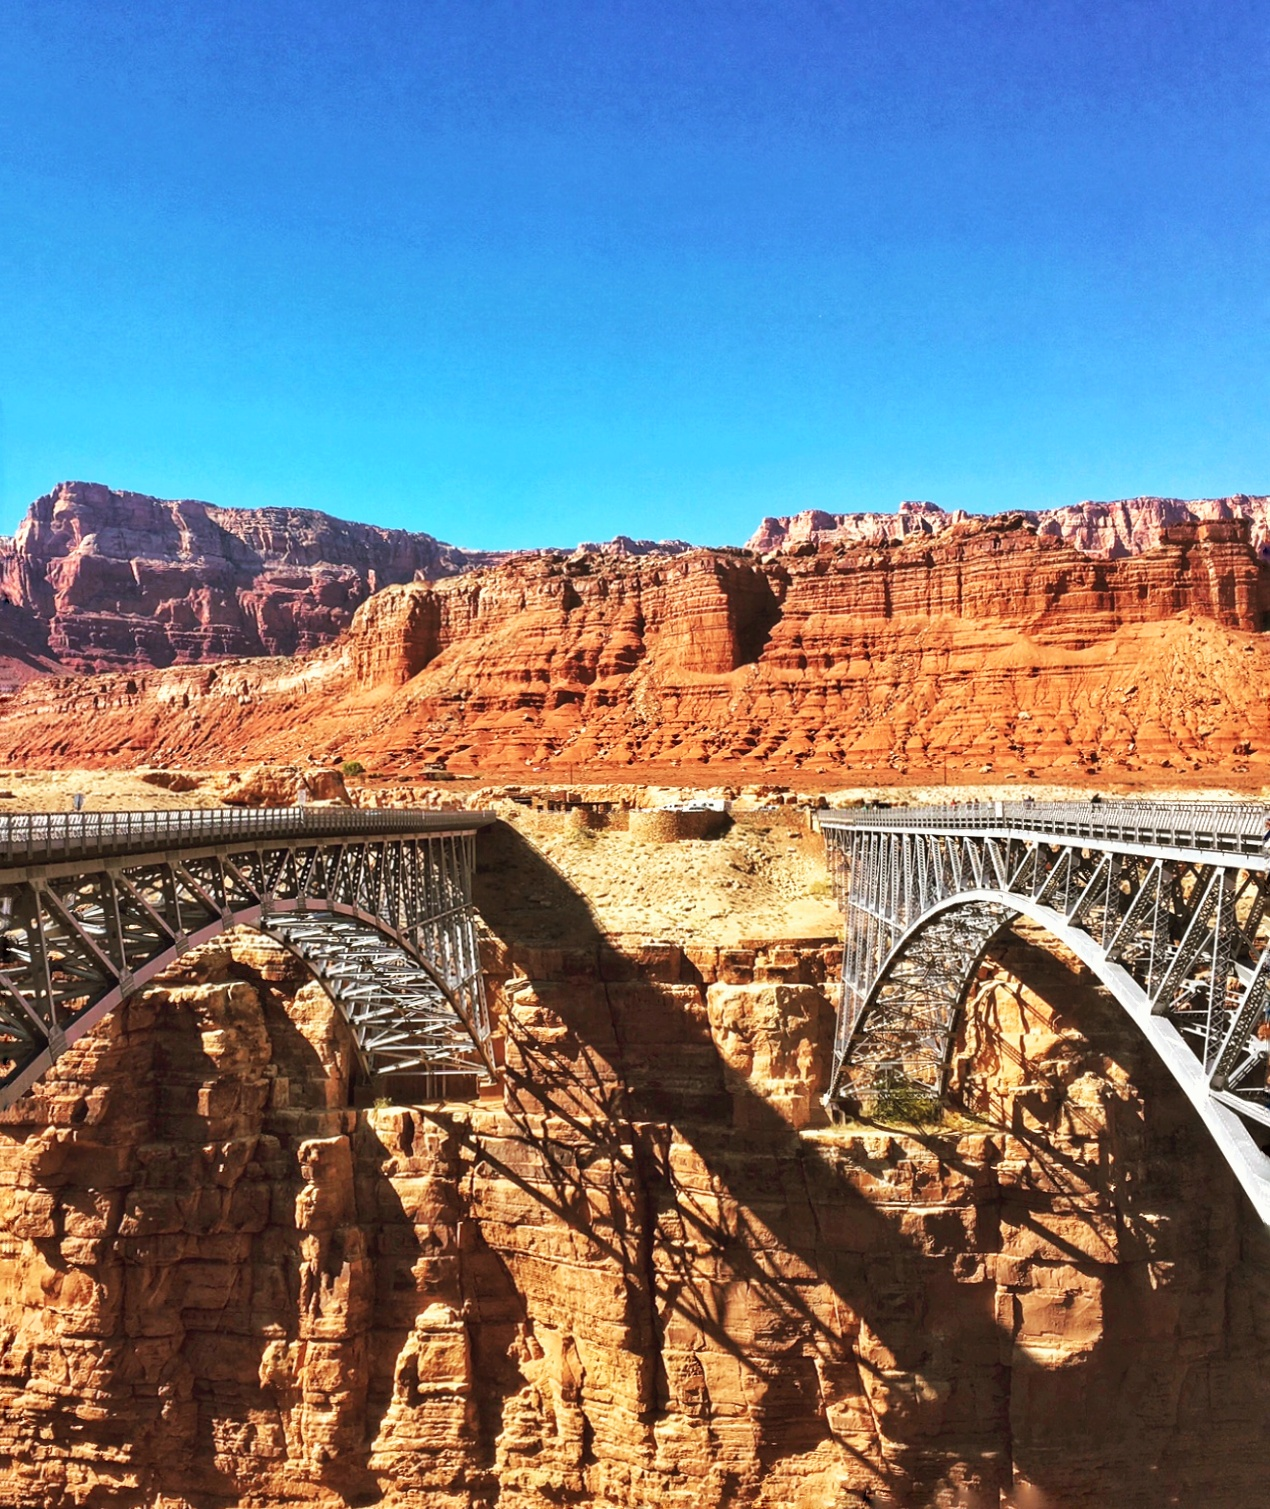 A view of the parallel original and modern Navajo Bridges